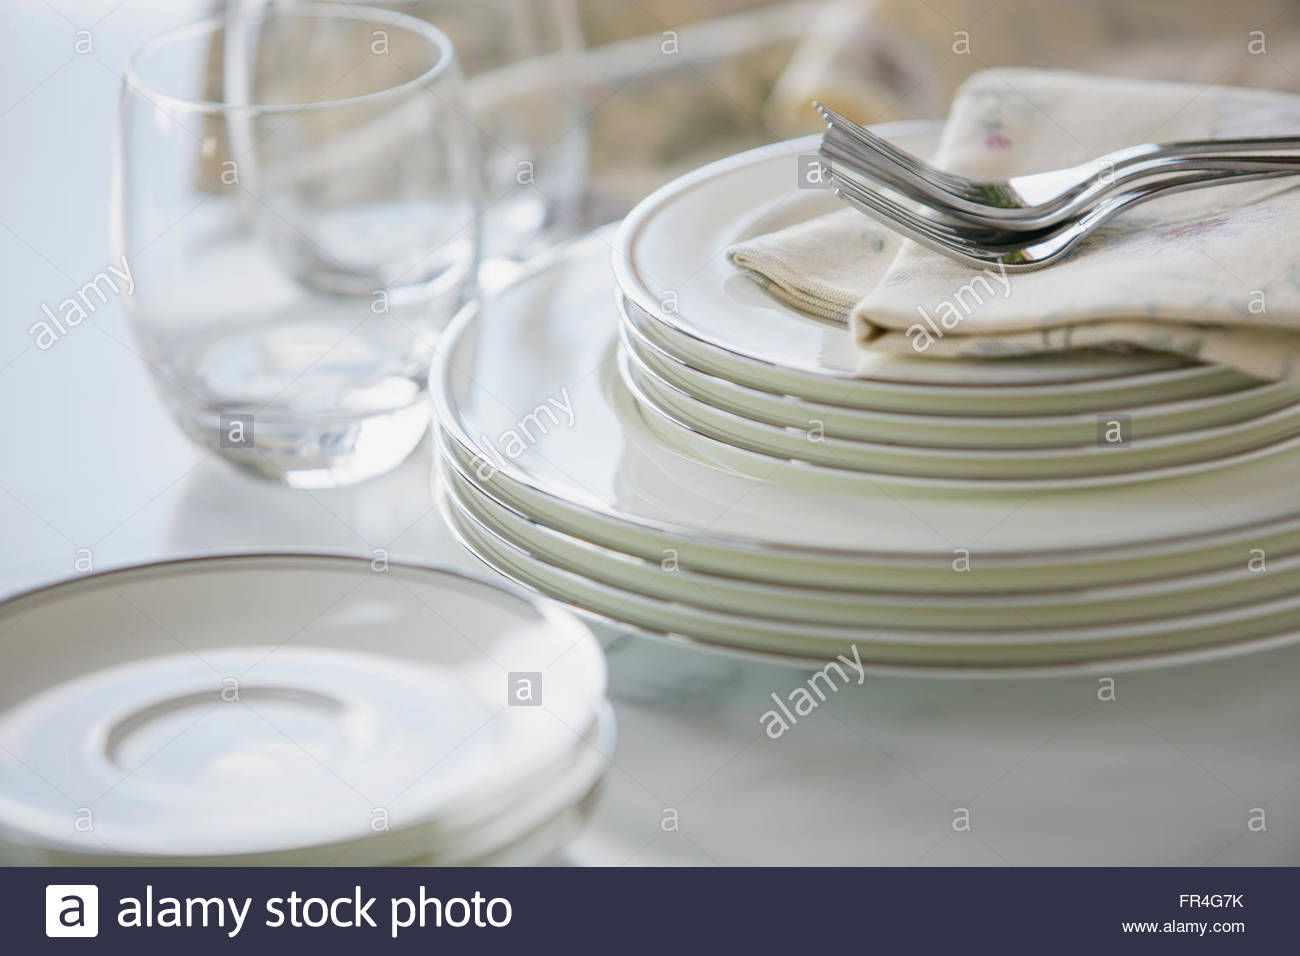 Close-up of gleaming fine china stacked on counter. - Stock Image